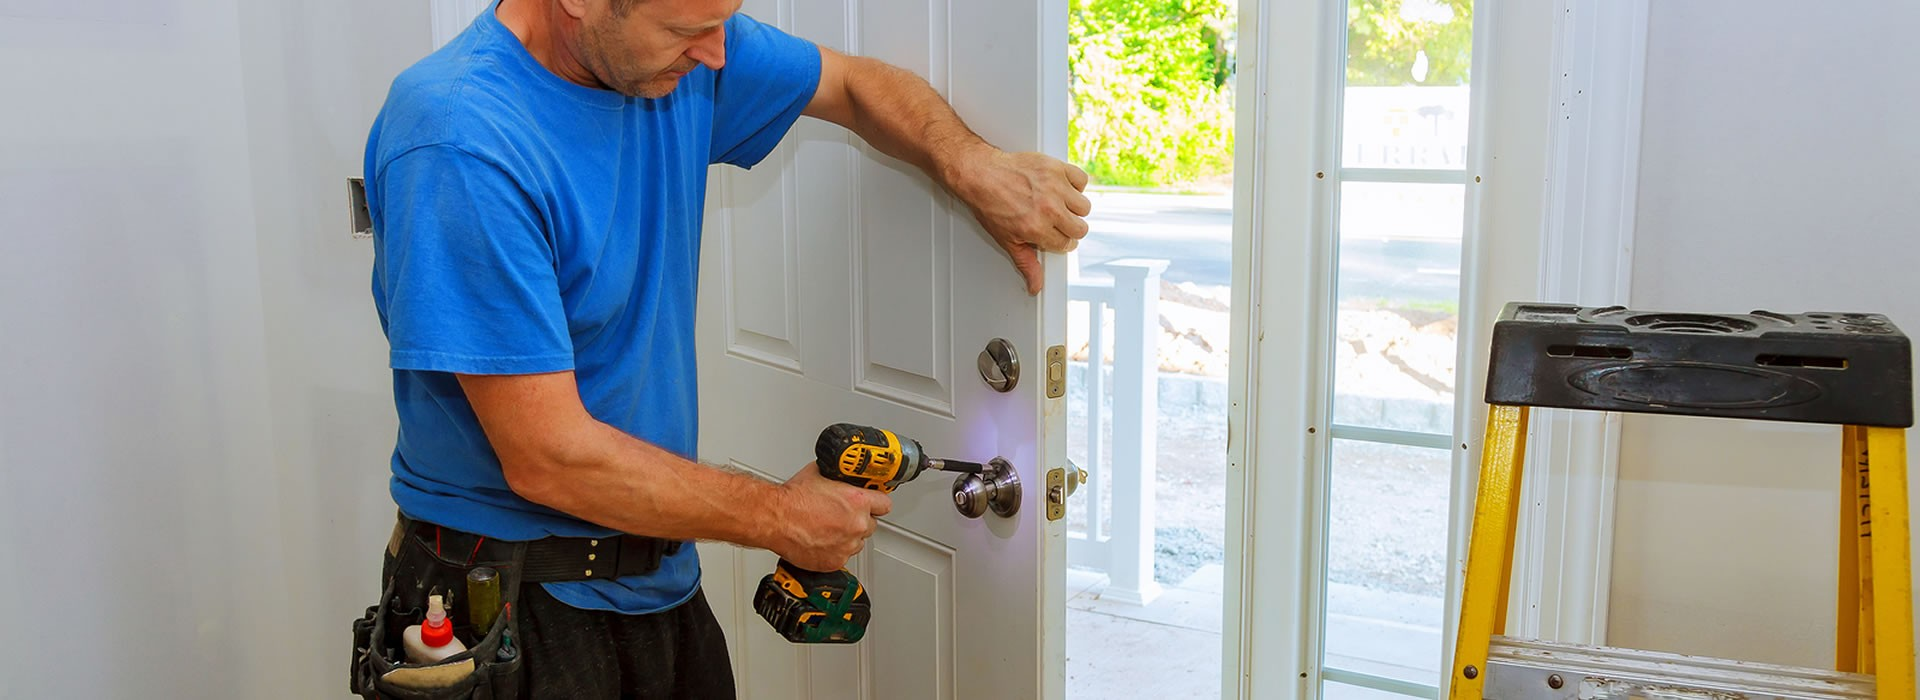 Residential Locksmith Services in Bowie, MD